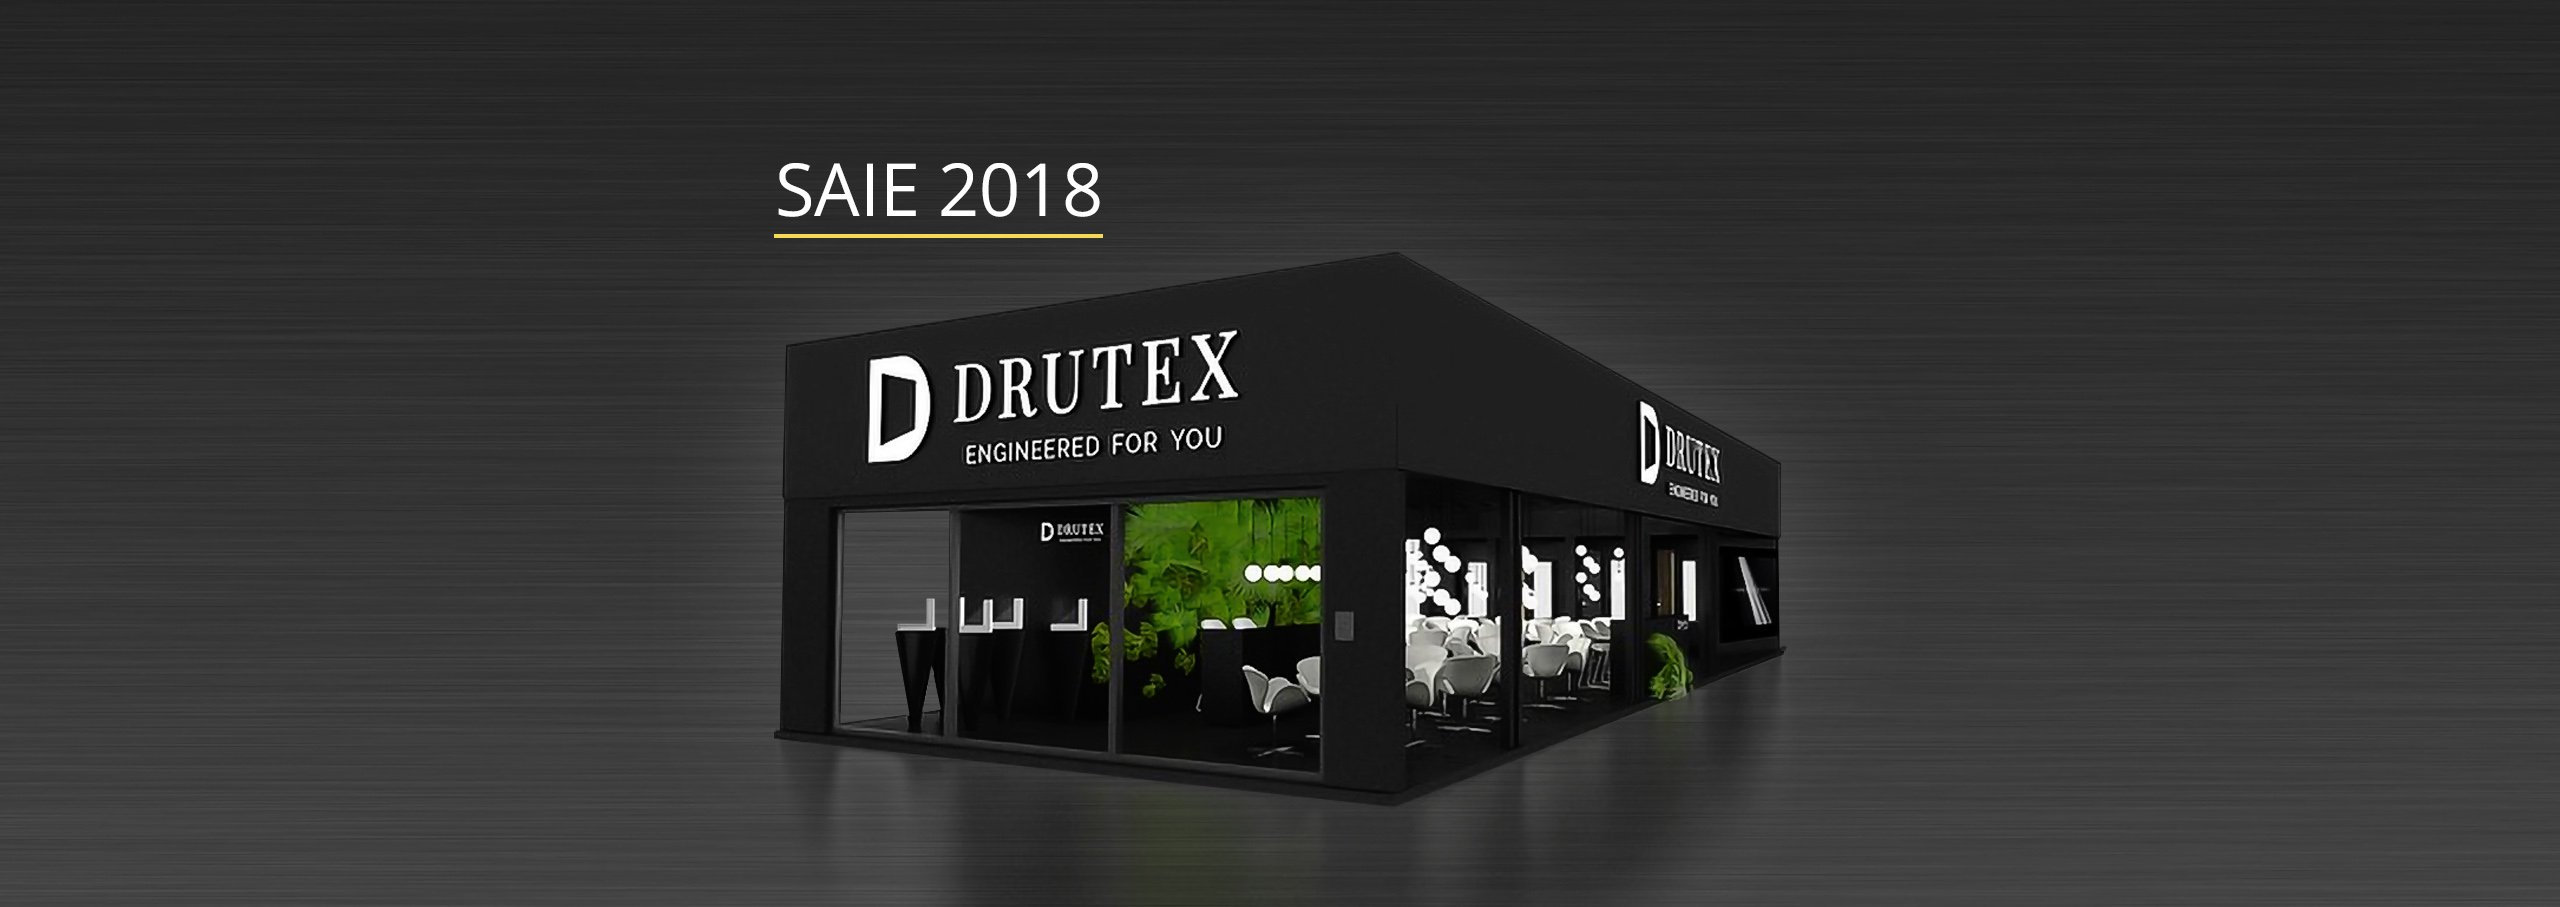 Drutex at the SAIE exhibition in Italy